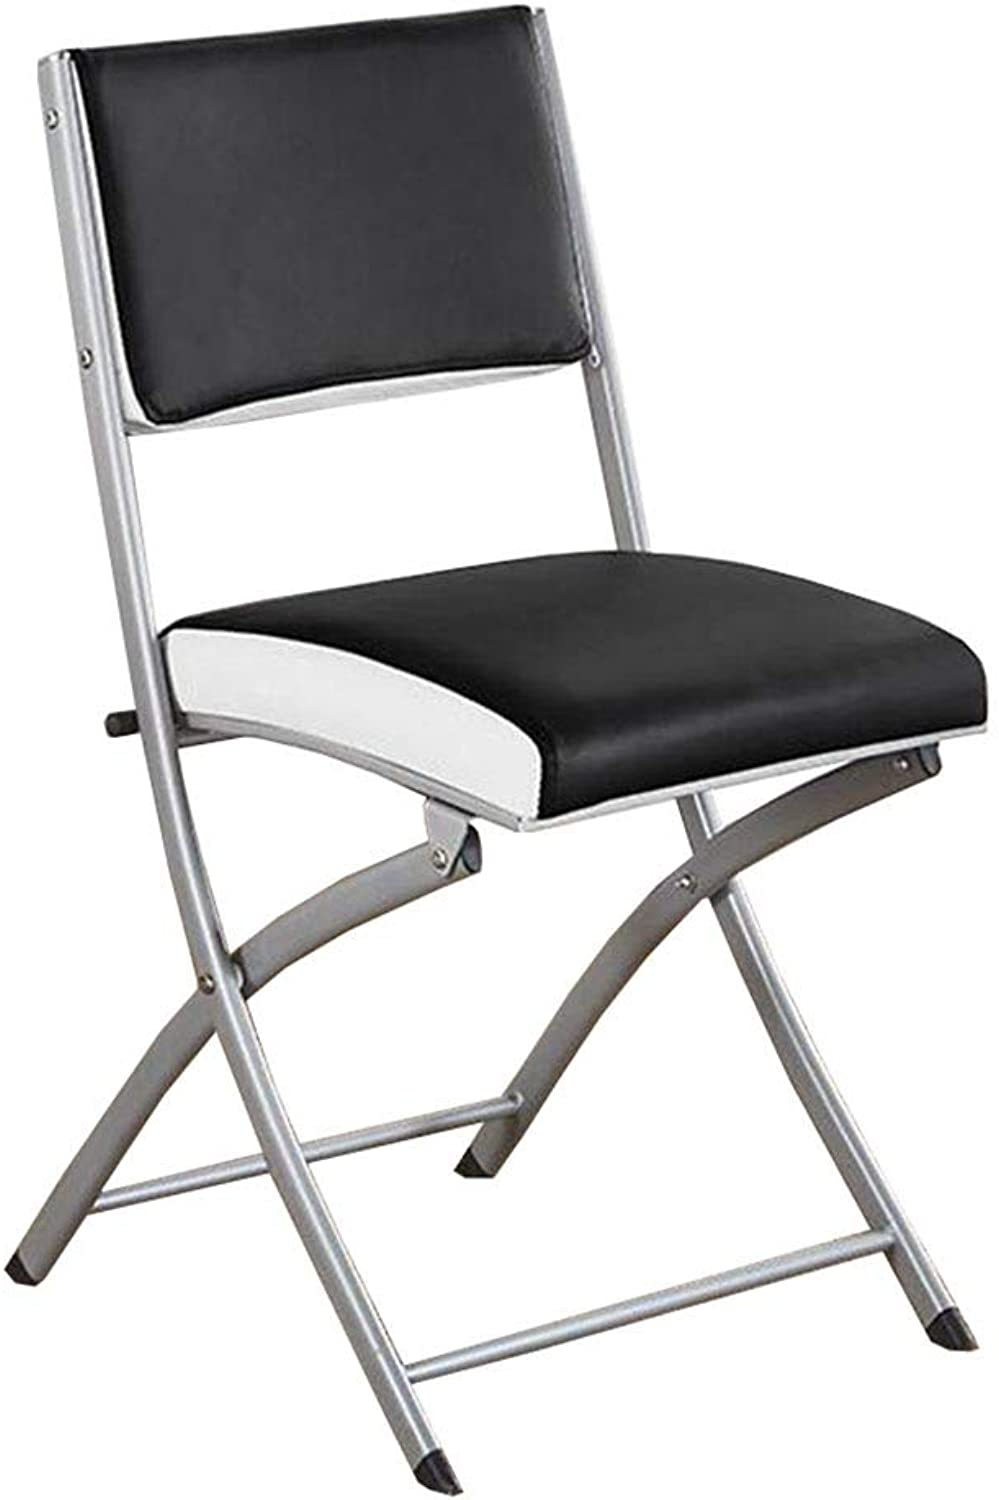 Folding Chair Dall Office Reception Desk Chairs Easy Storage Backrest Chair Armrests Conference Chair (color   T1)